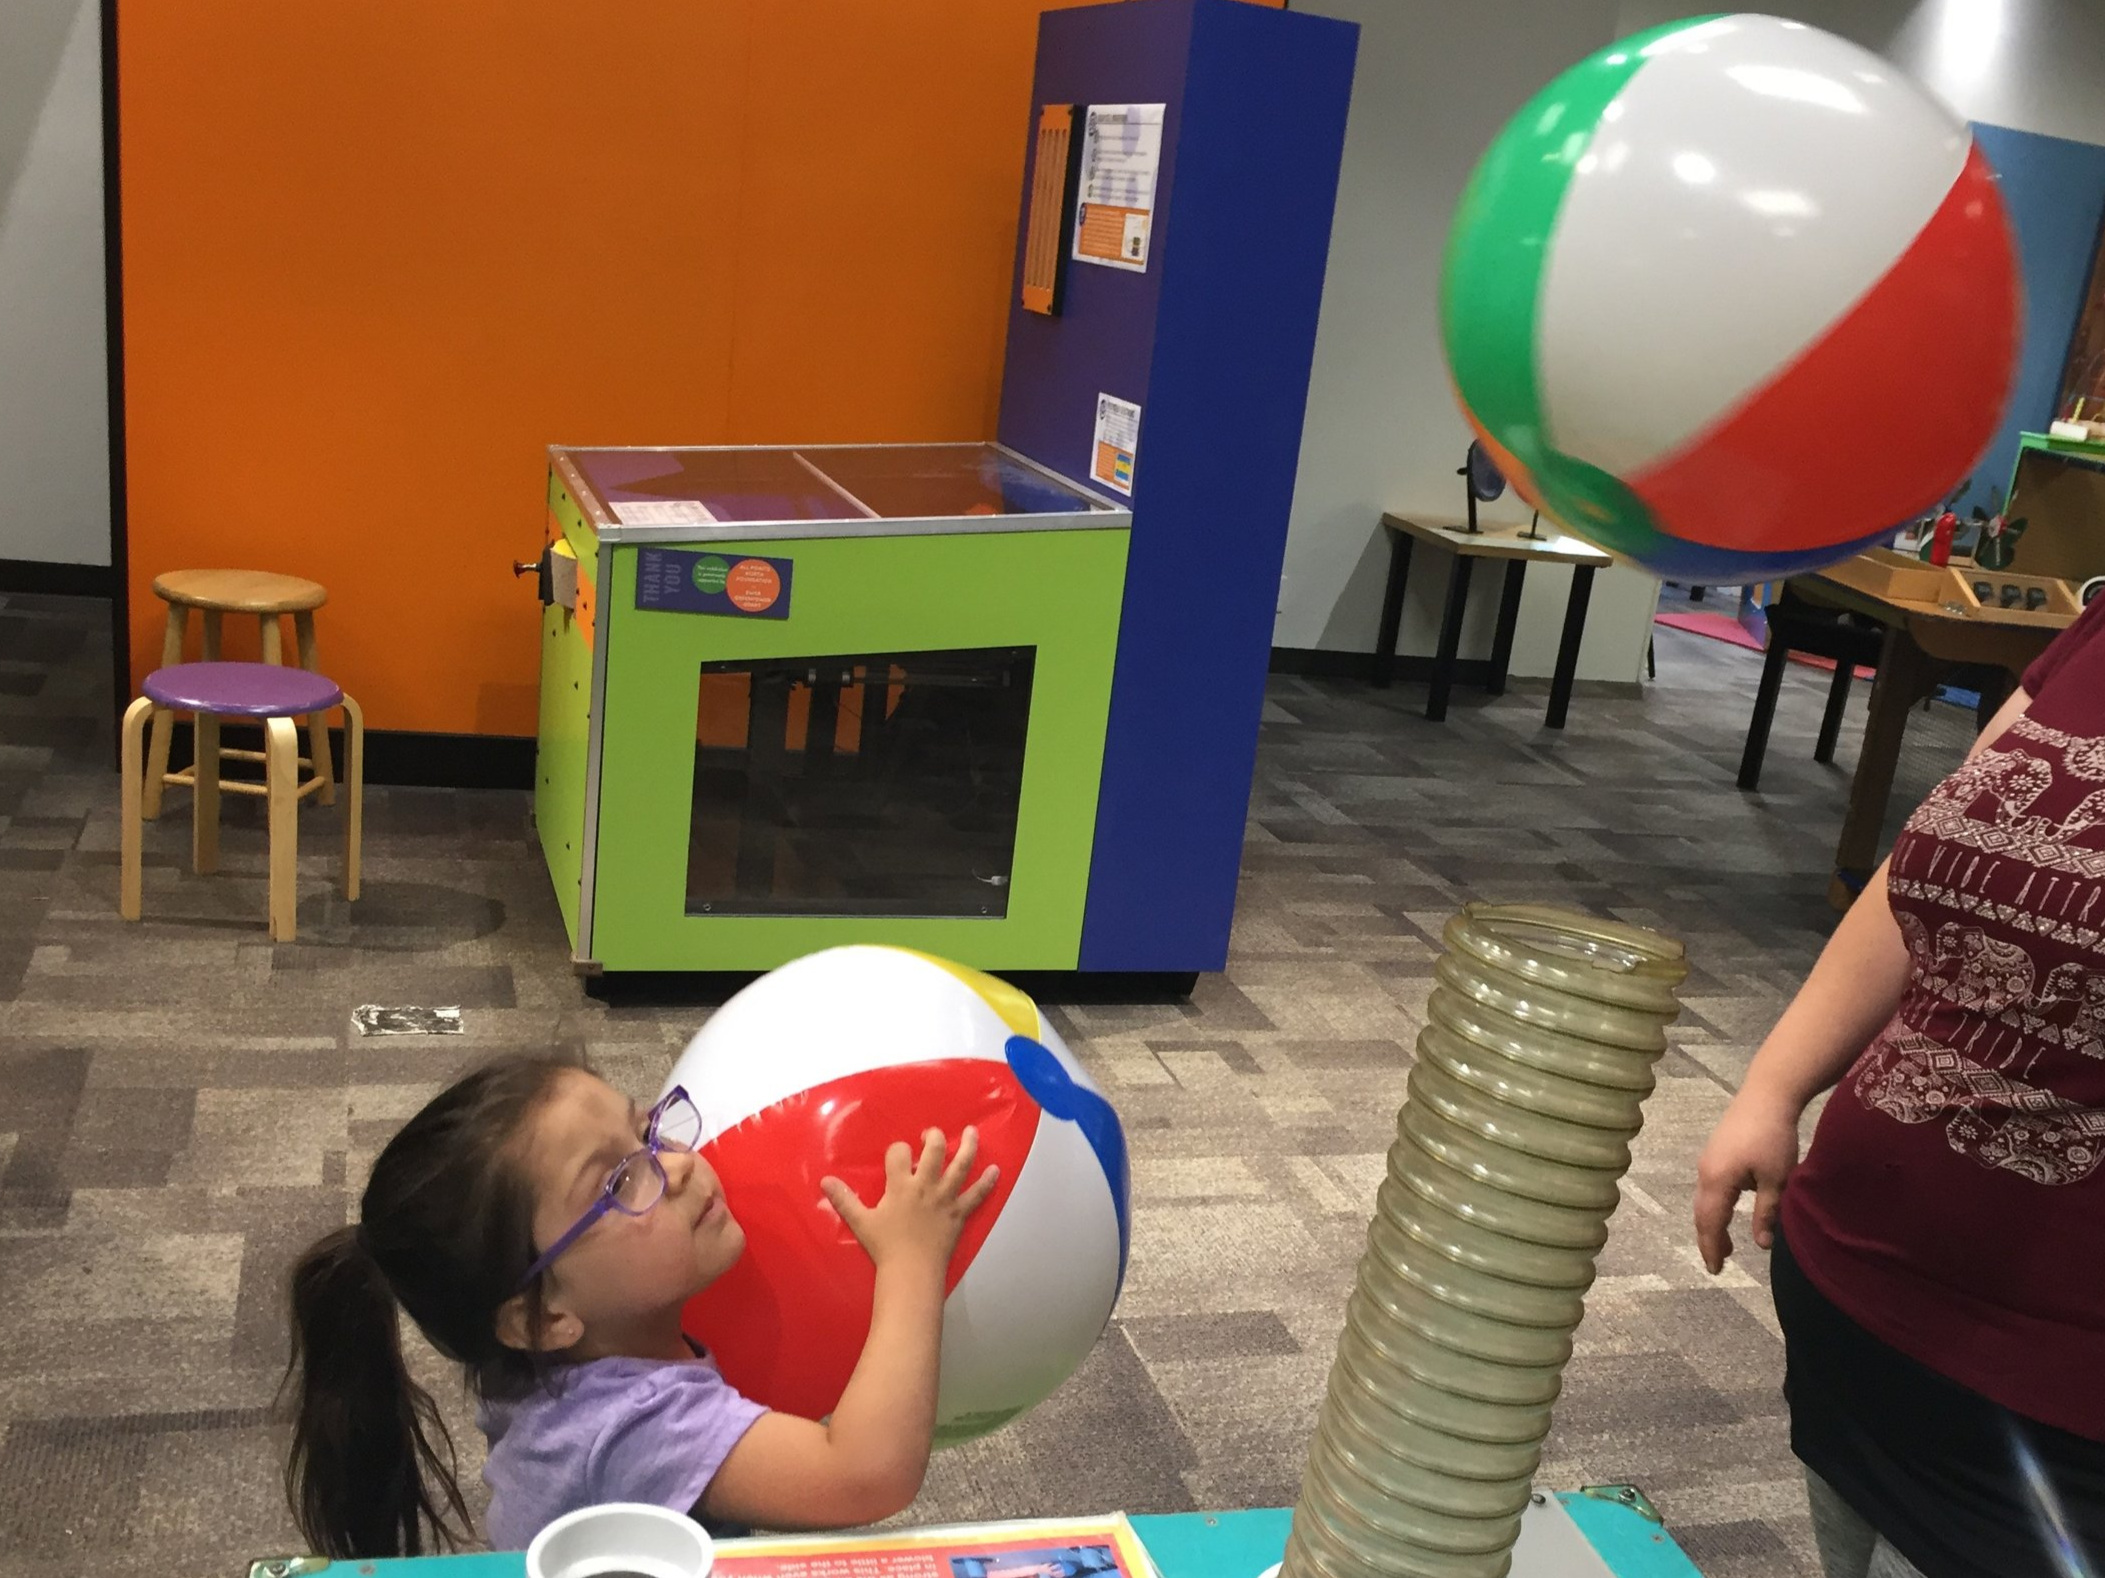 Family members involved in the IOSS Counseling group enjoy some Science Center activities during a Family Fun Night organized to allow parents and families opportunities to relax and have a fun time.